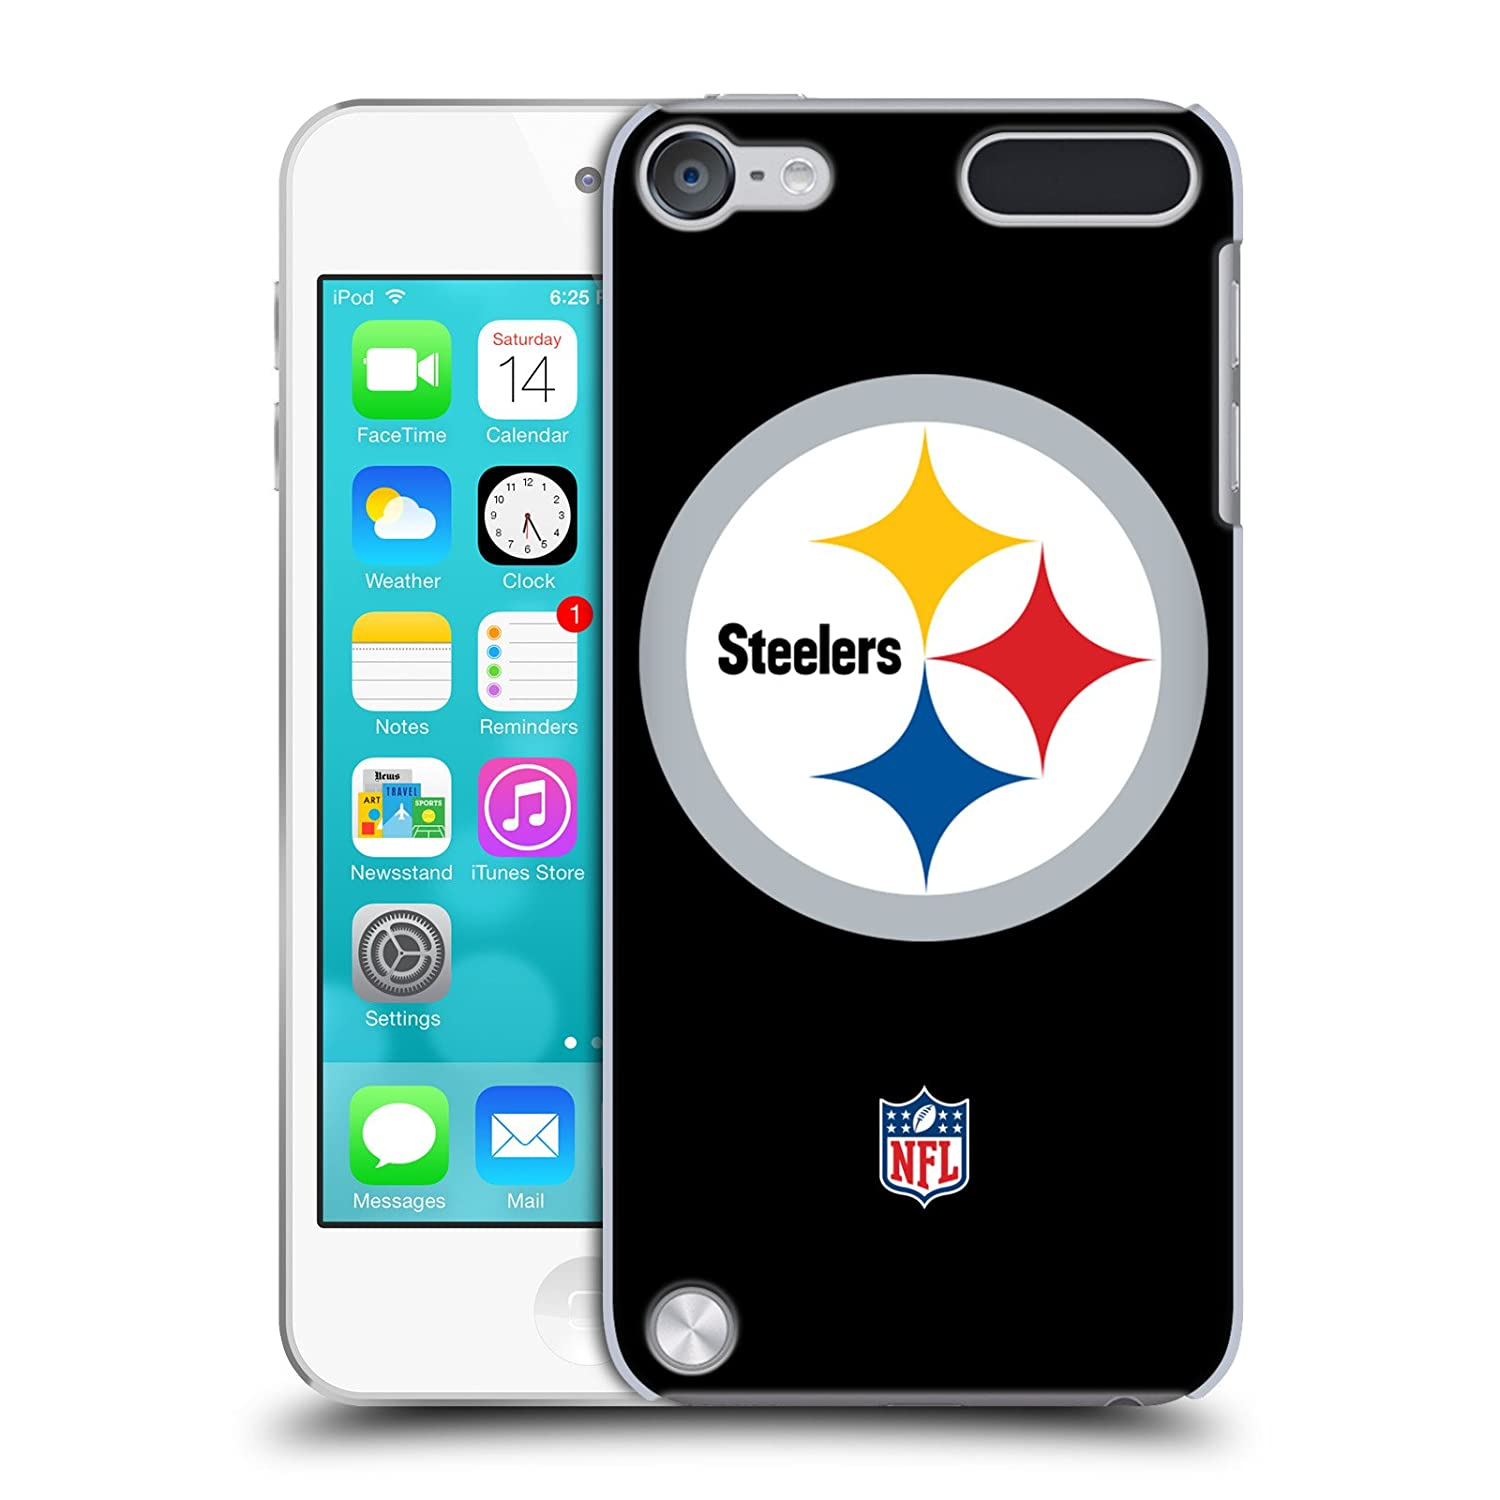 Official NFL Plain Pittsburgh Steelers Logo Hard Back Case for iPod Touch 5th Gen / 6th Gen HC-TOUCH5G-NFLLOPIT-PLA